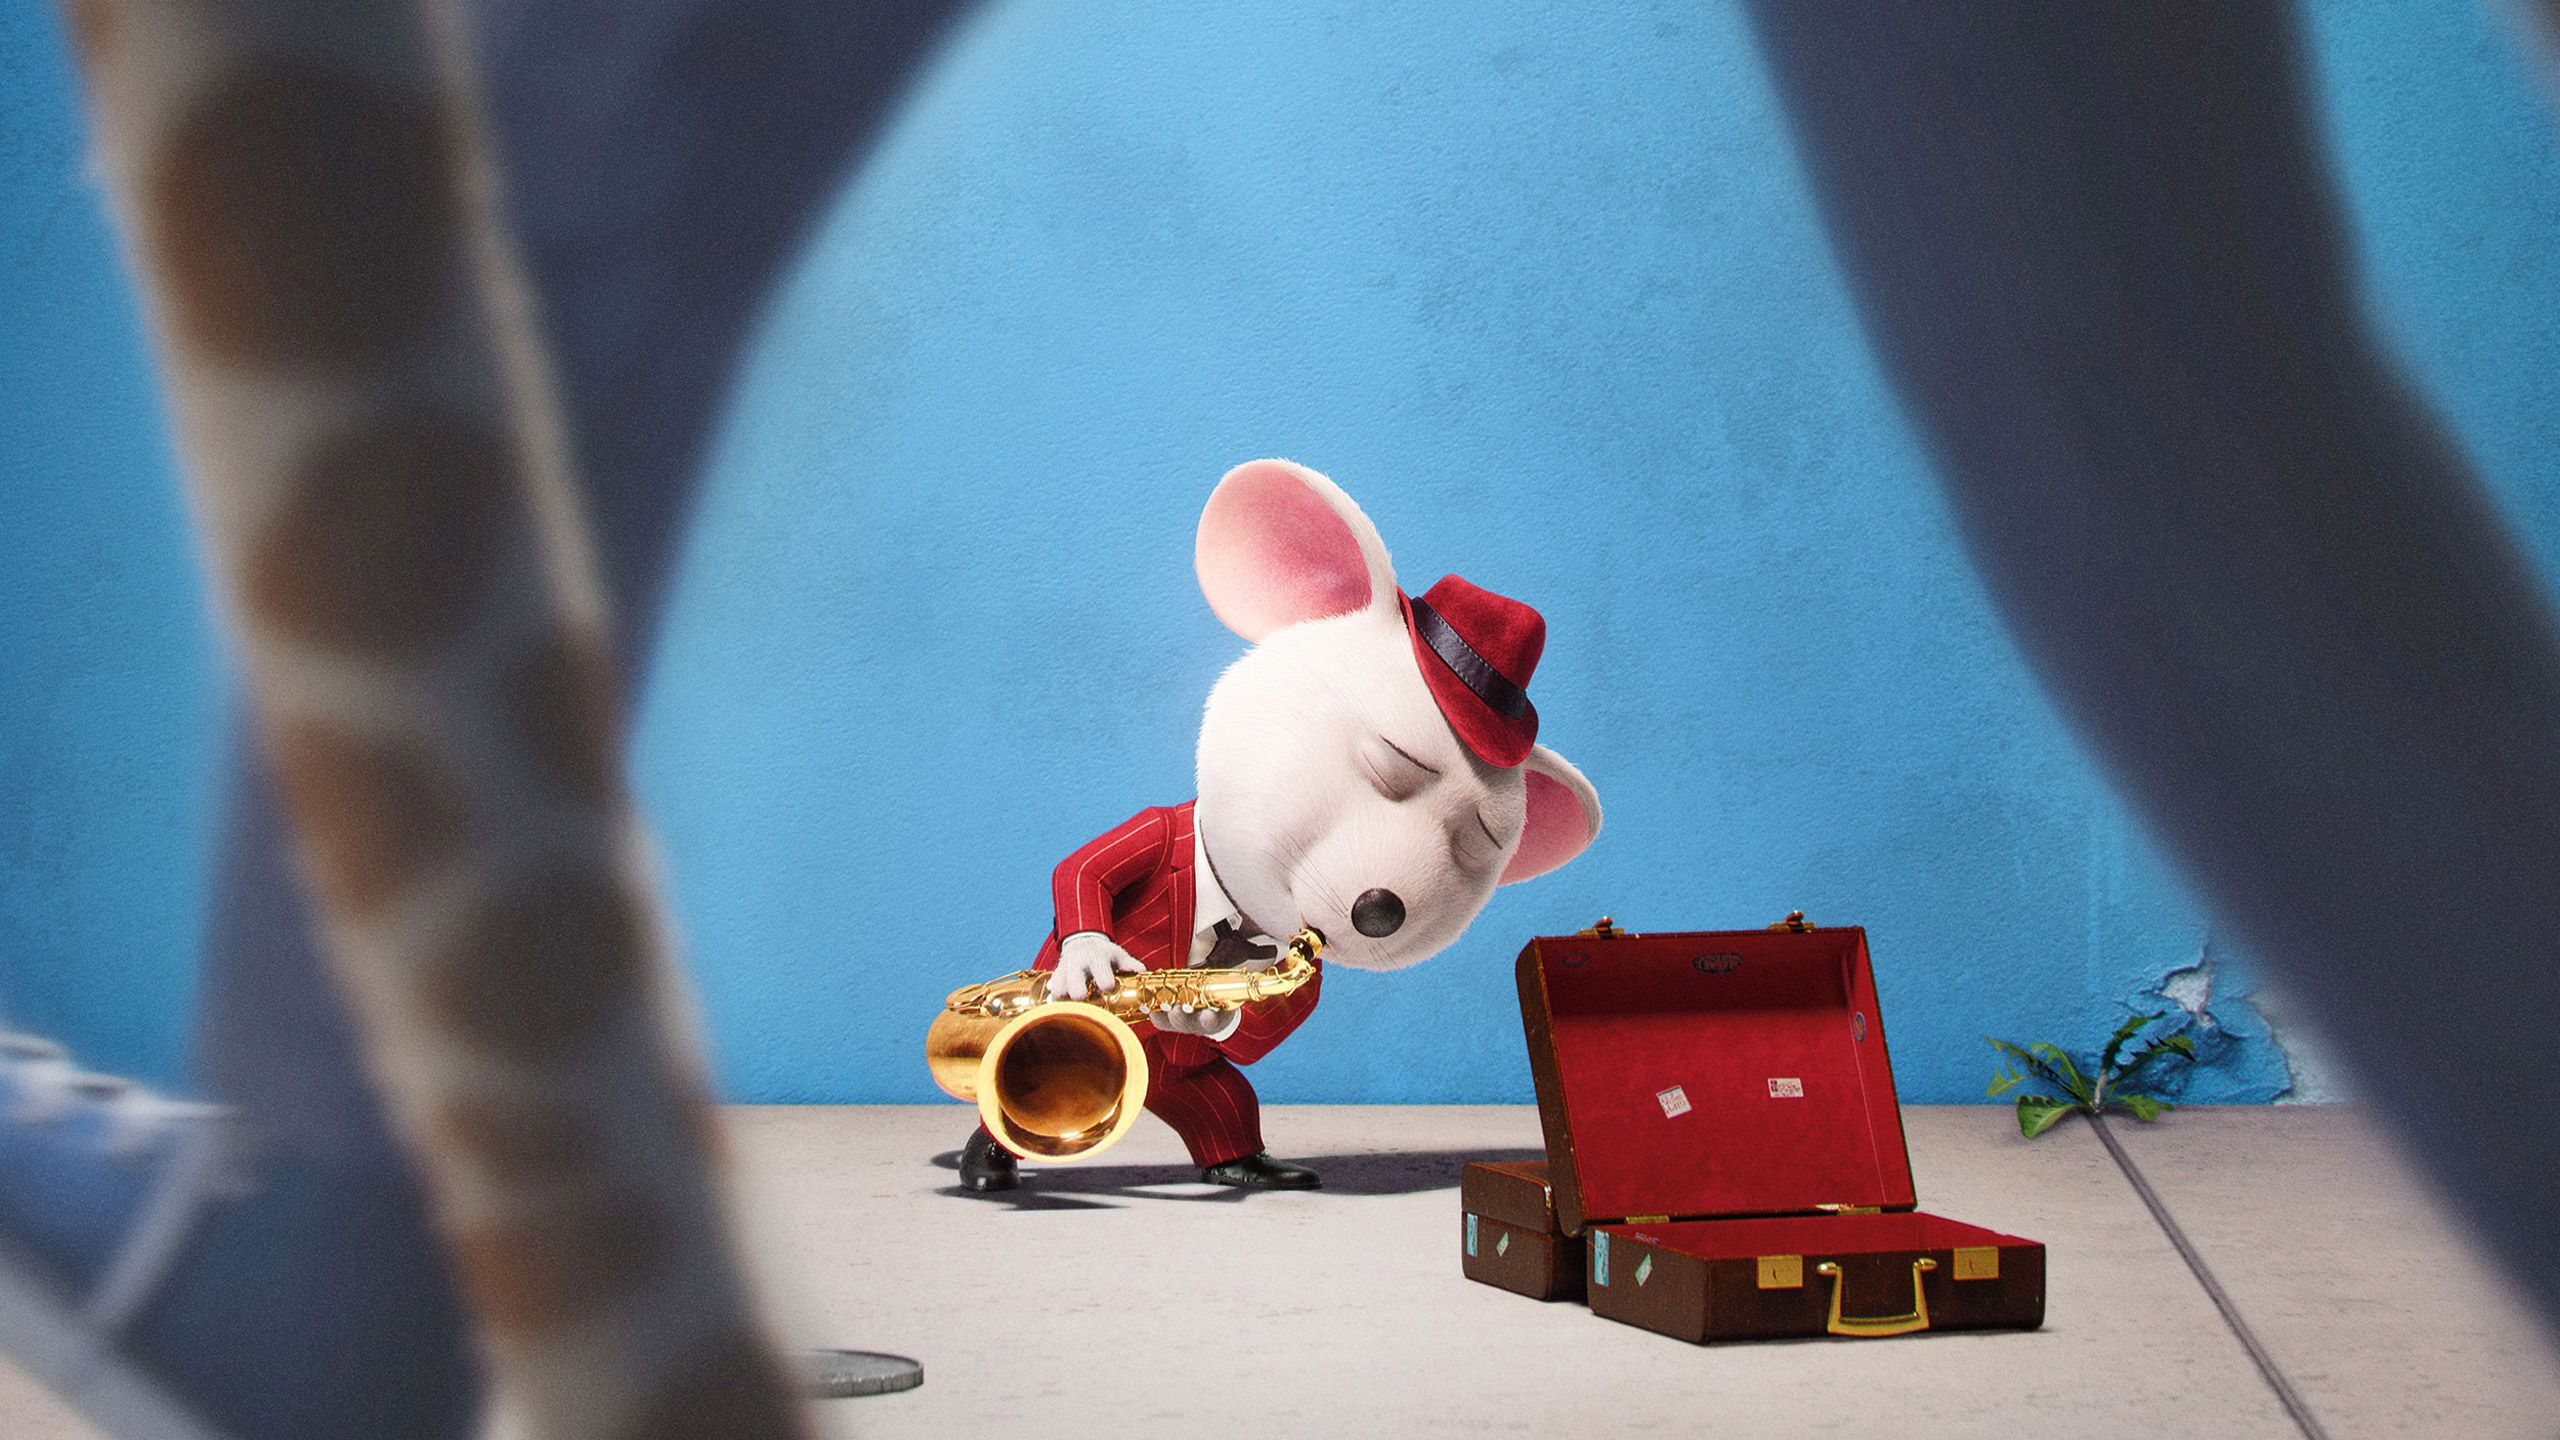 Sing 2016 Hd Wallpapers Sing Movie Cool Animations Singing